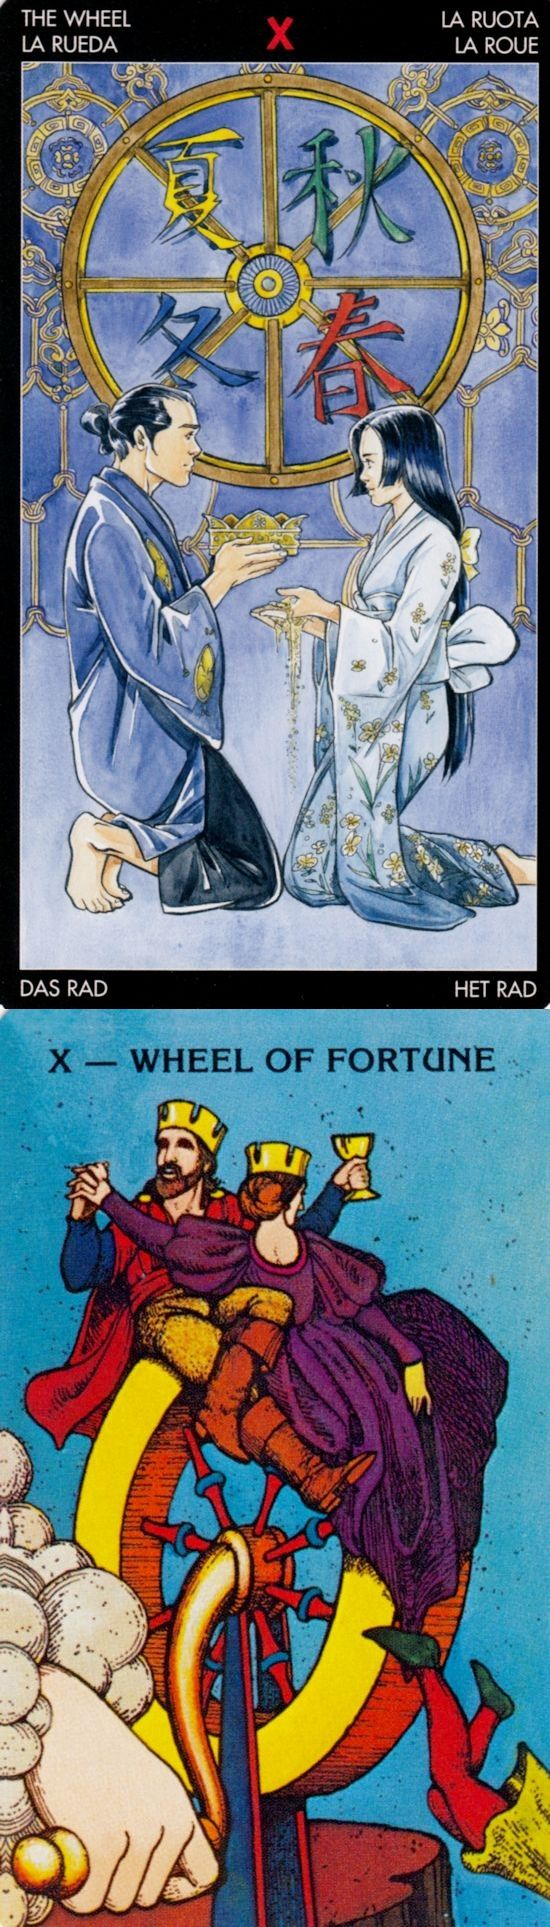 WHEEL OF FORTUNE: inevitability and series of bad events (reverse). Manga Tarot deck and Morgan Tarot deck: free one card tarot reading, online tarot prediction vs tarot reading near me. Best 2017 fortune telling cards and tarot art nouveau.